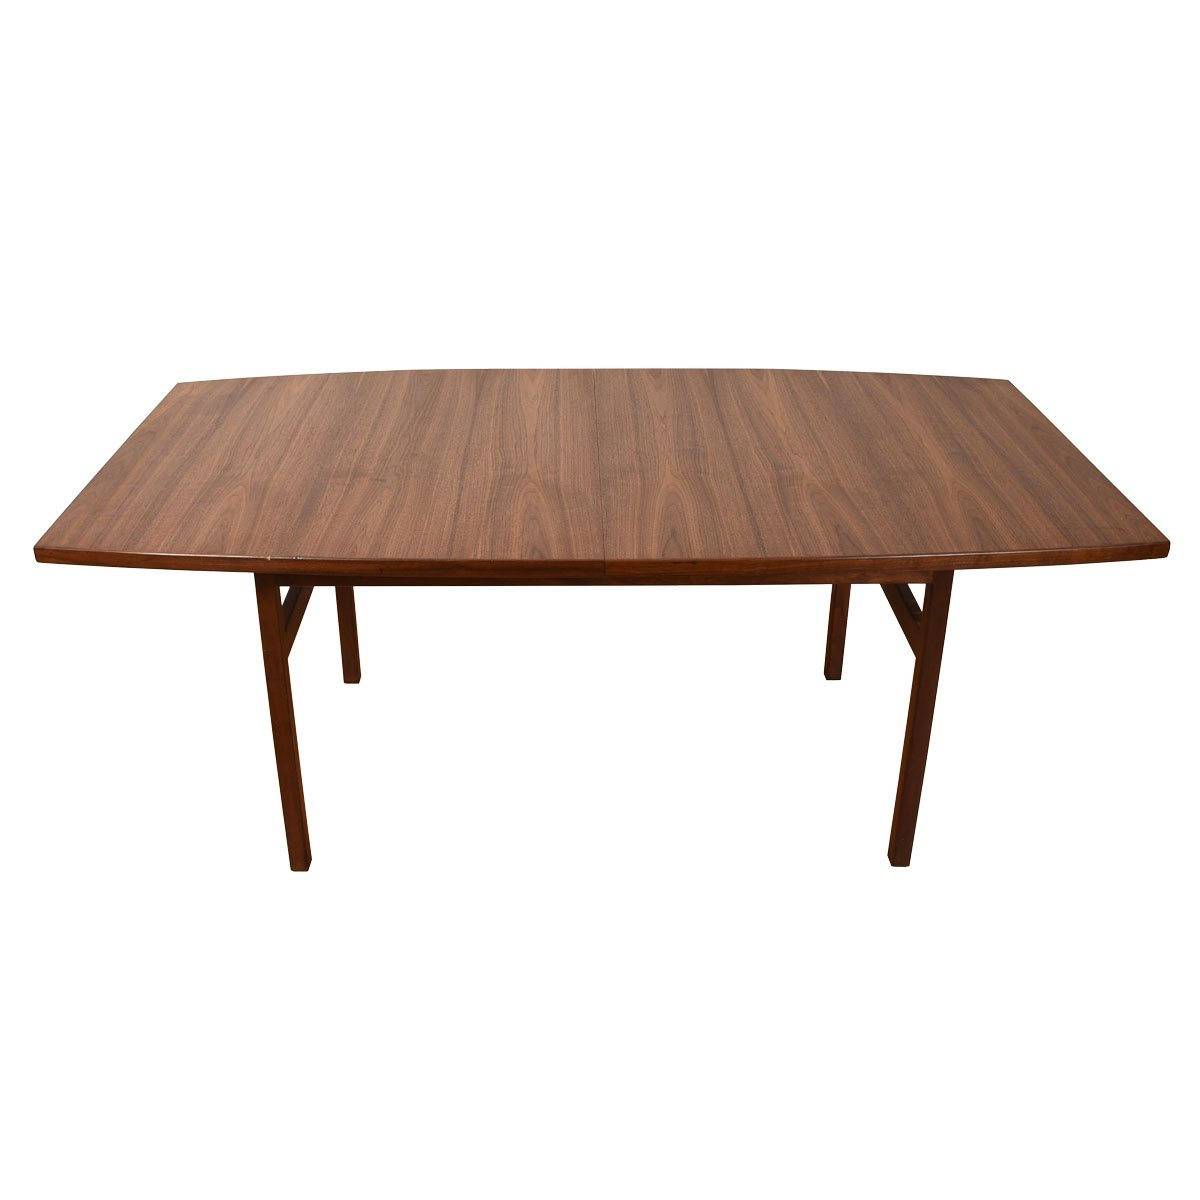 MCM Walnut Colossal Expanding Bowed Shaped Dining Table.